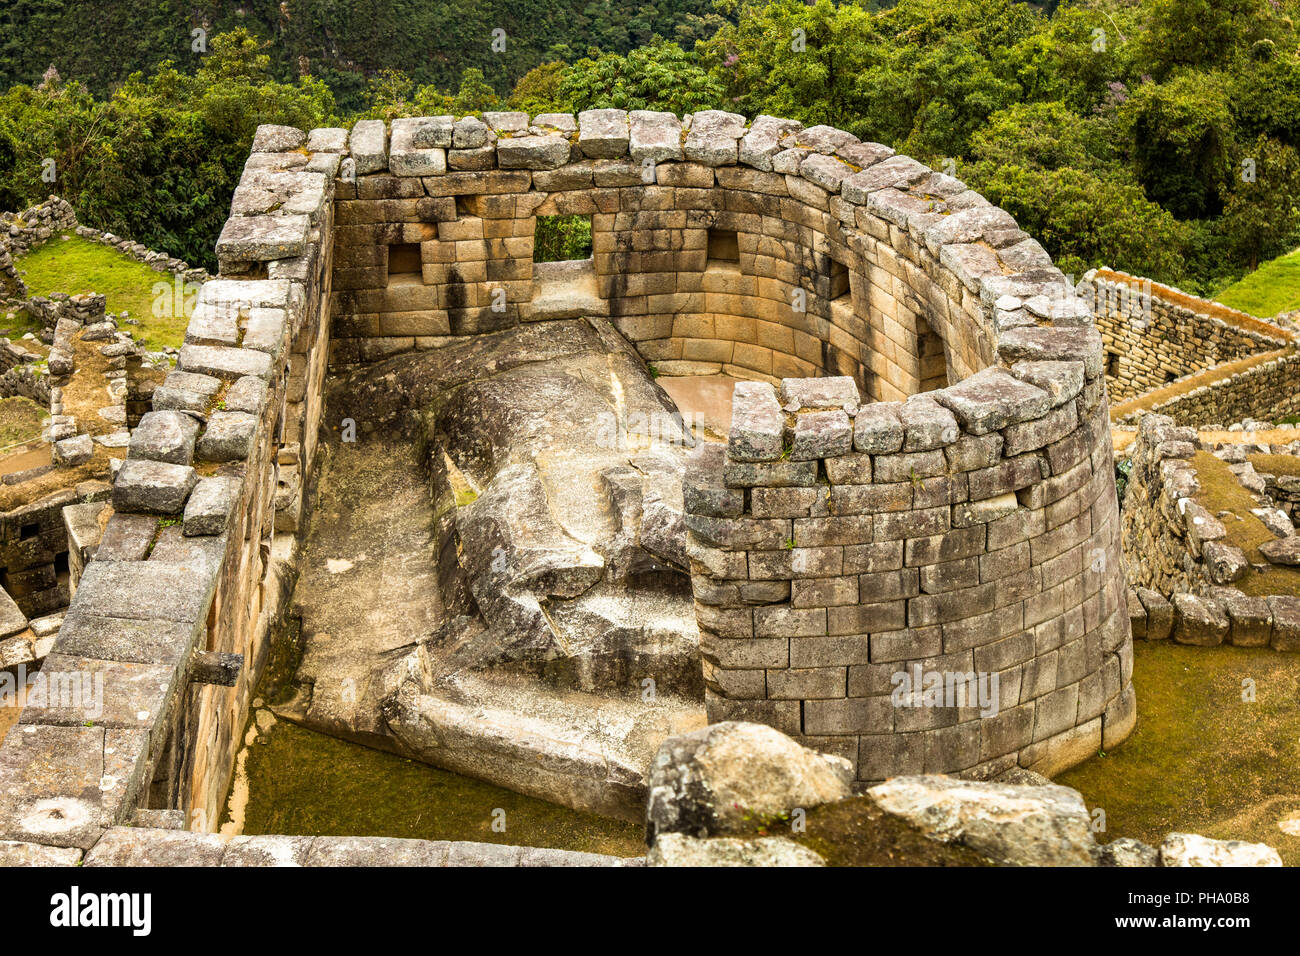 Sun Temple in the sanctuary of Machu Picchu Ruins, Sacred Valley, near Agua Calientes, Peru - Stock Image